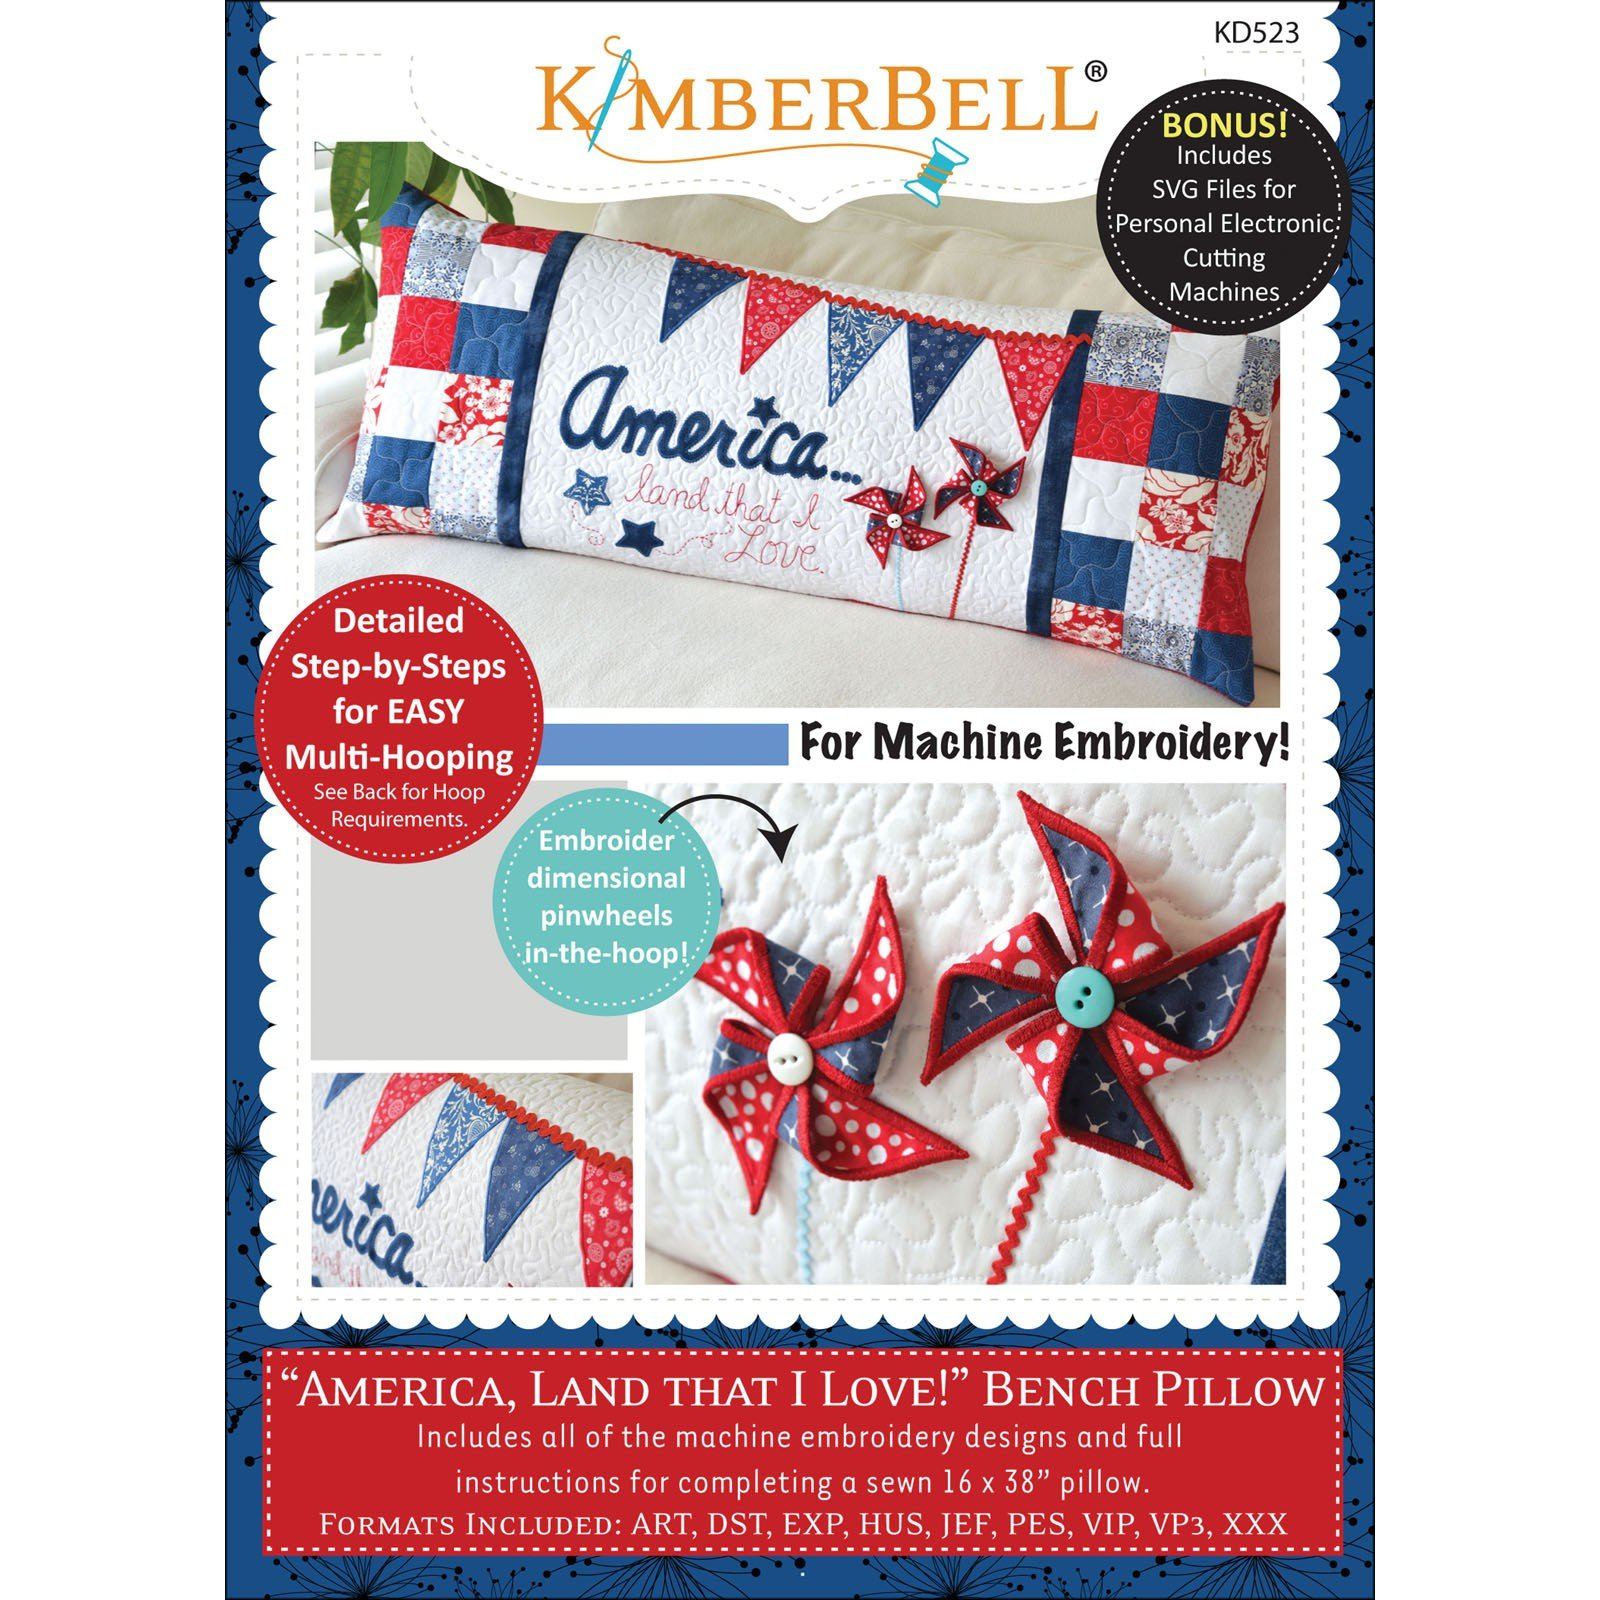 America Land I Love! Bench Pillow Kimberbell Embroidery CD